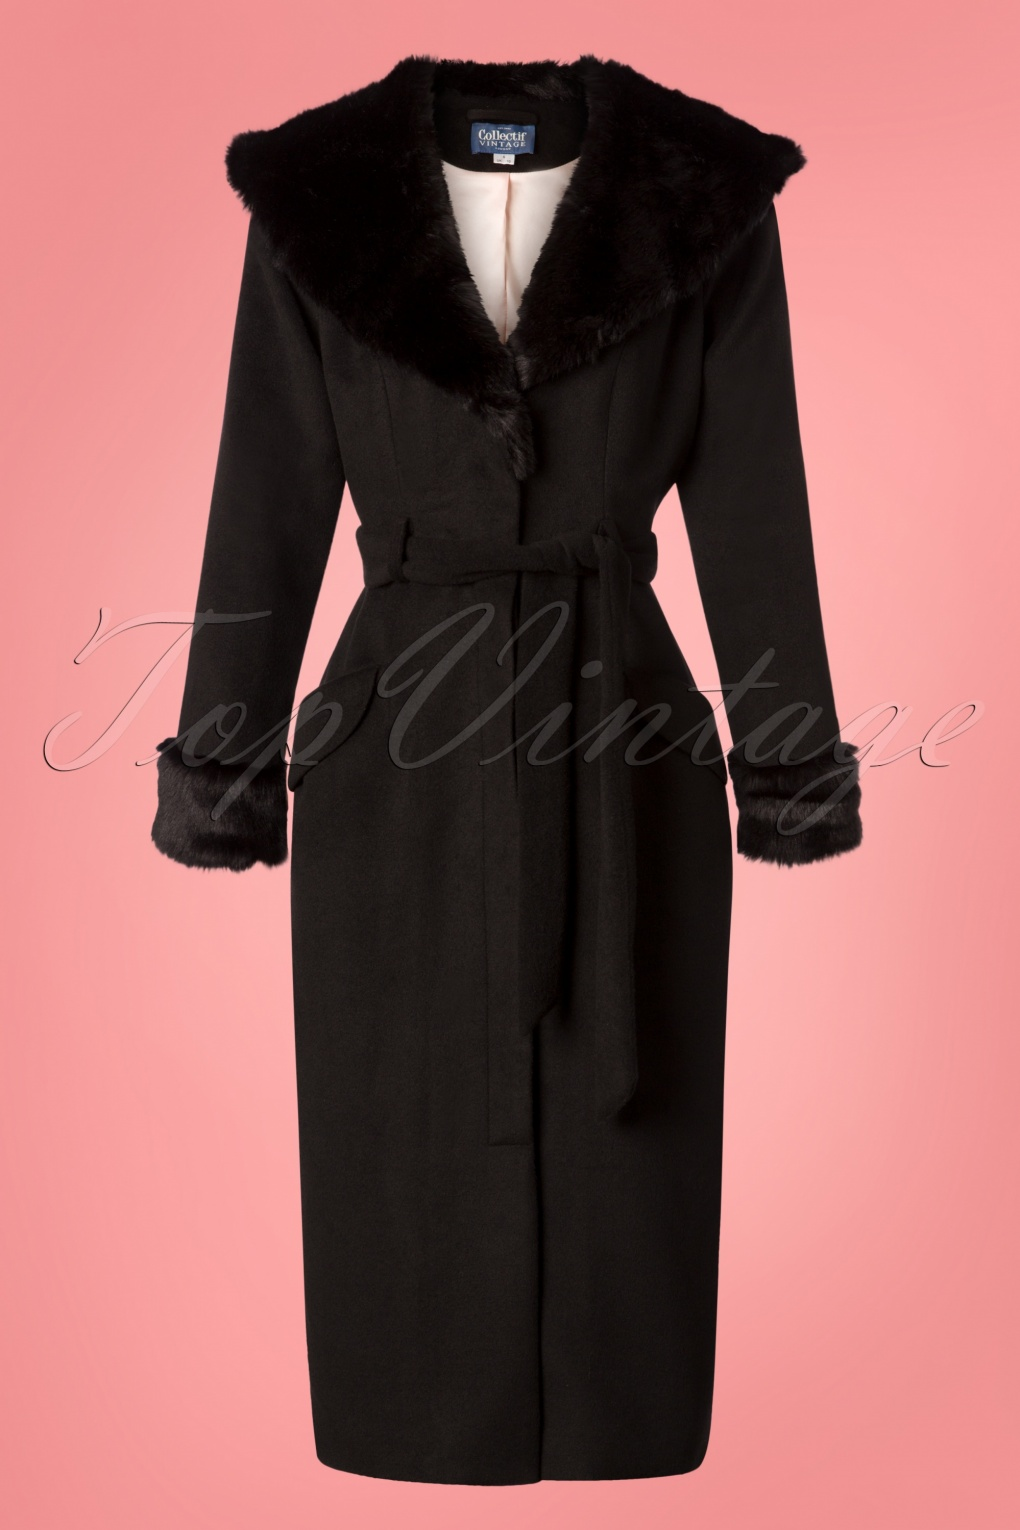 1950s Jackets, Coats, Bolero | Swing, Pin Up, Rockabilly 50s Carmella Coat in Black £95.29 AT vintagedancer.com